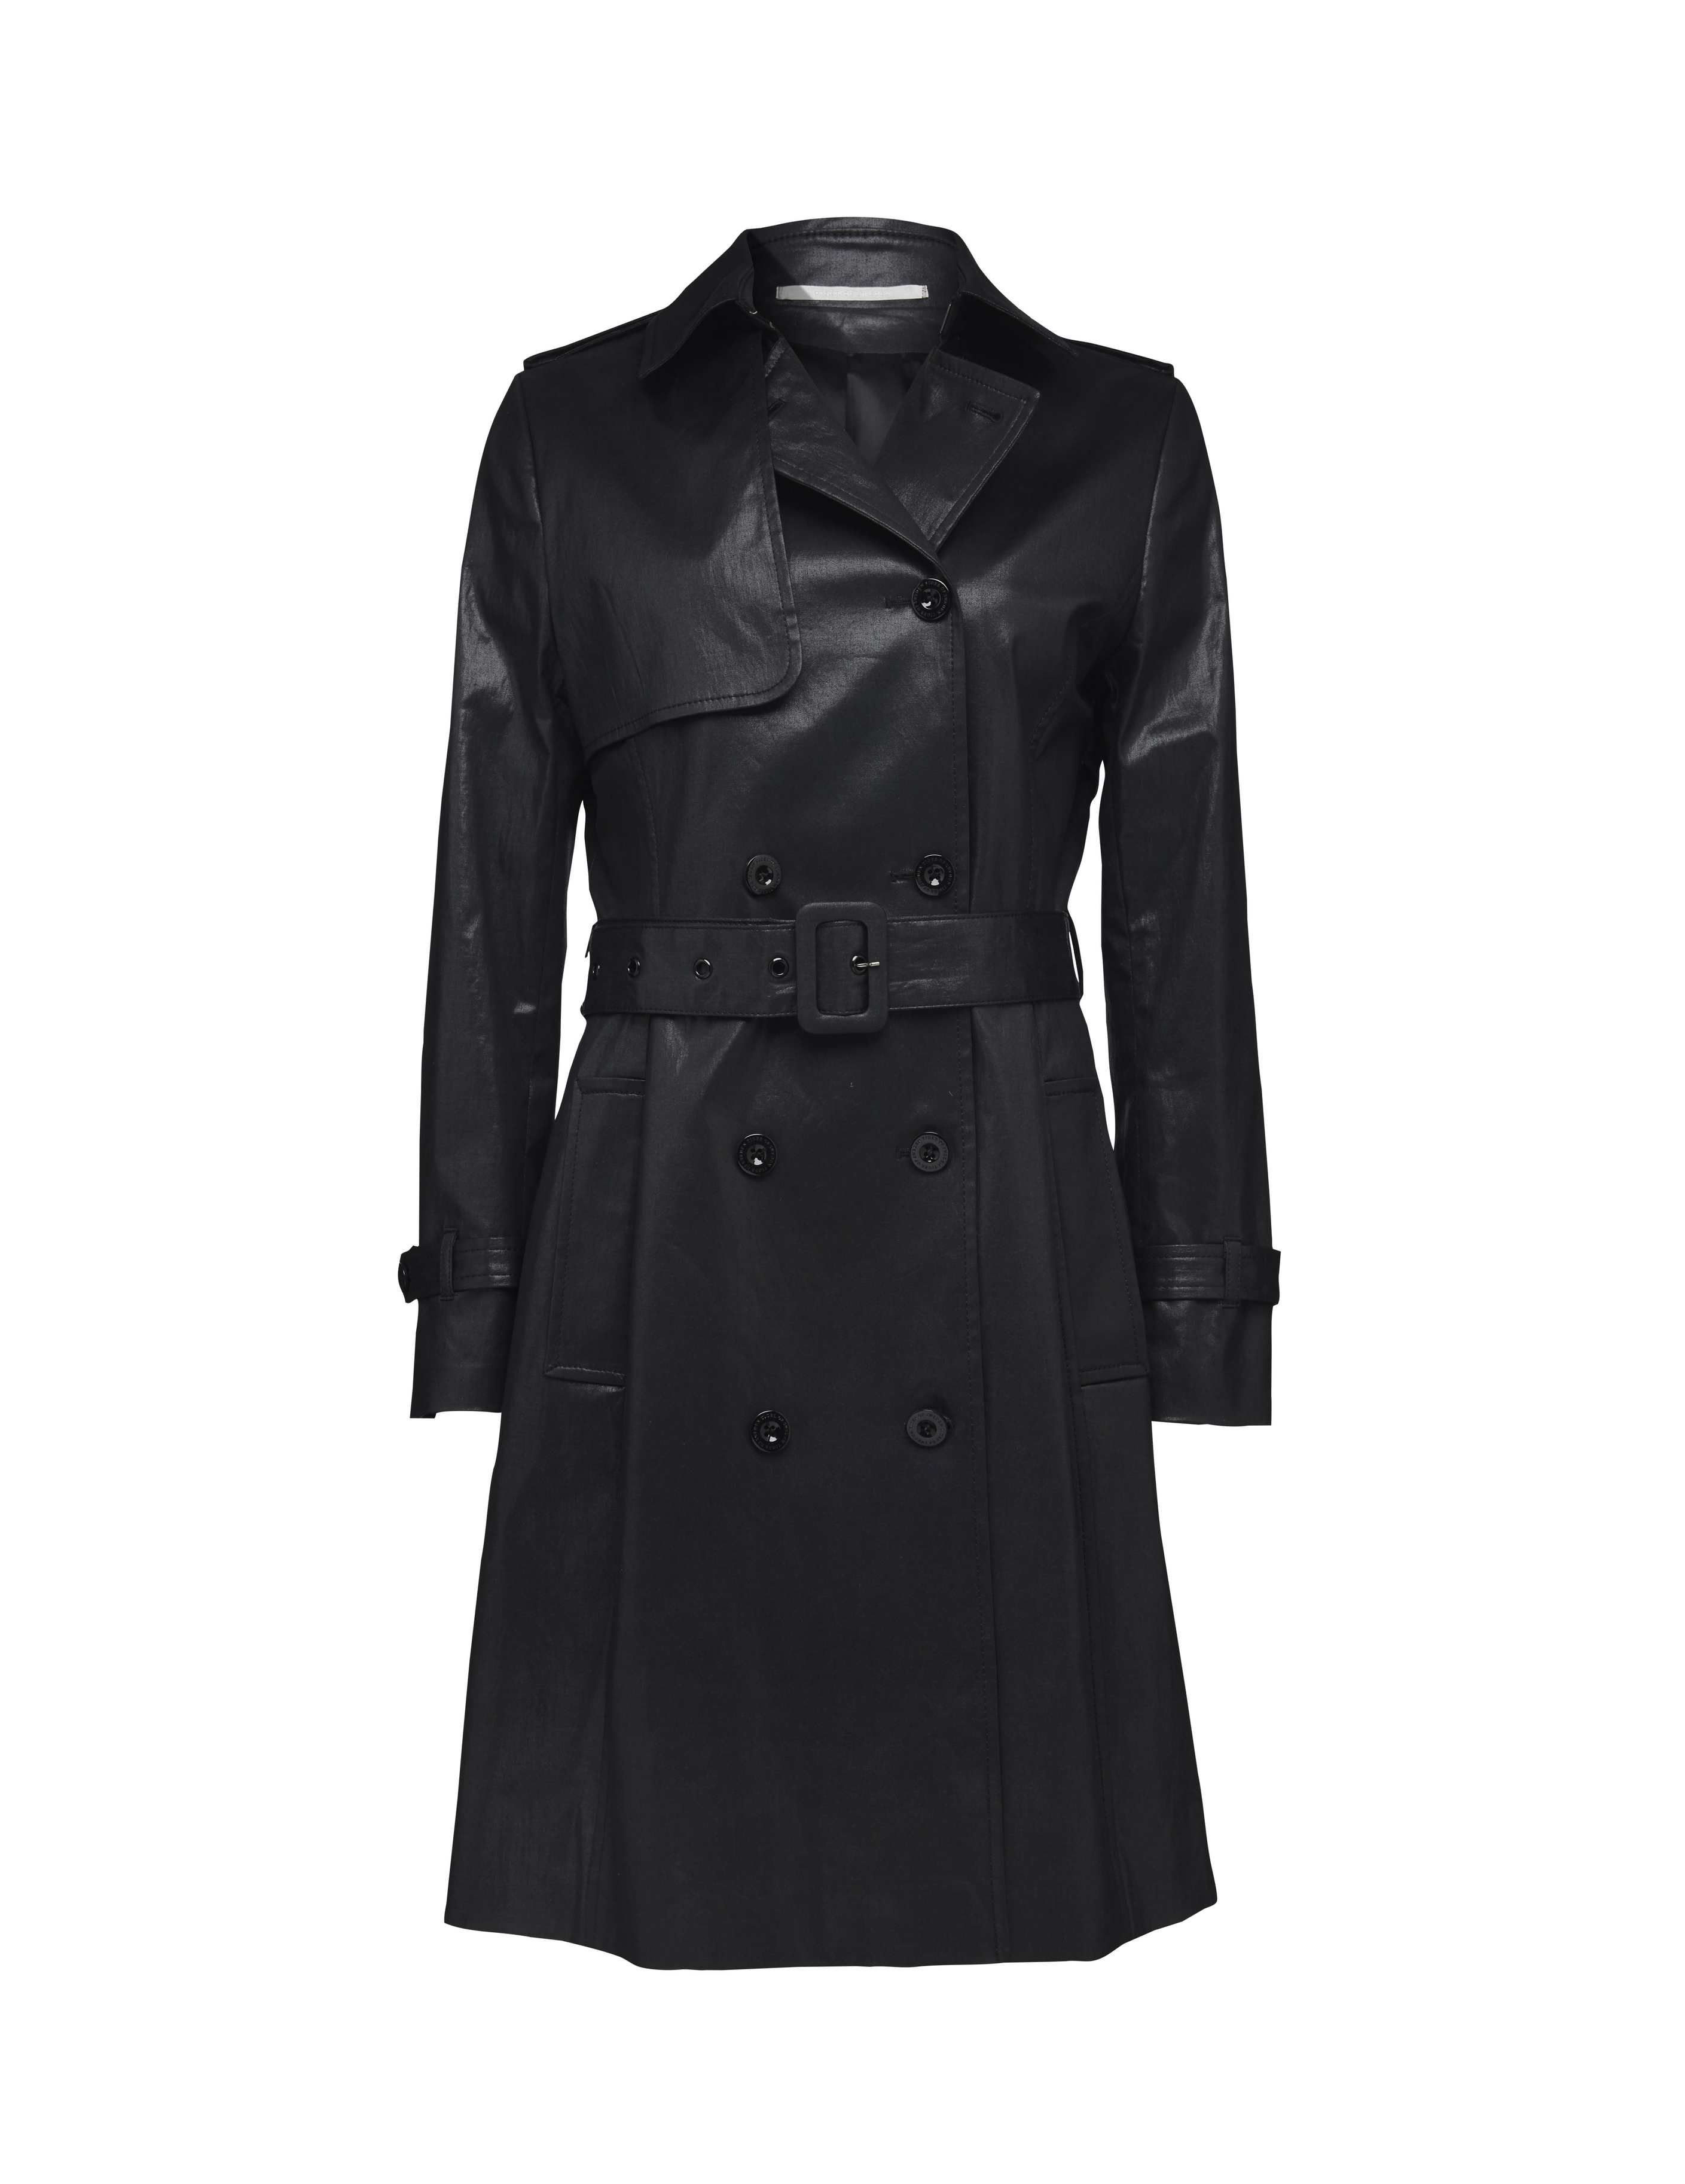 36ce8a8aad Tiene coat - Women's double-breasted coat in cotton with semi-lustrous  coating. Features hook and eye closure at collar and separate belt with ...